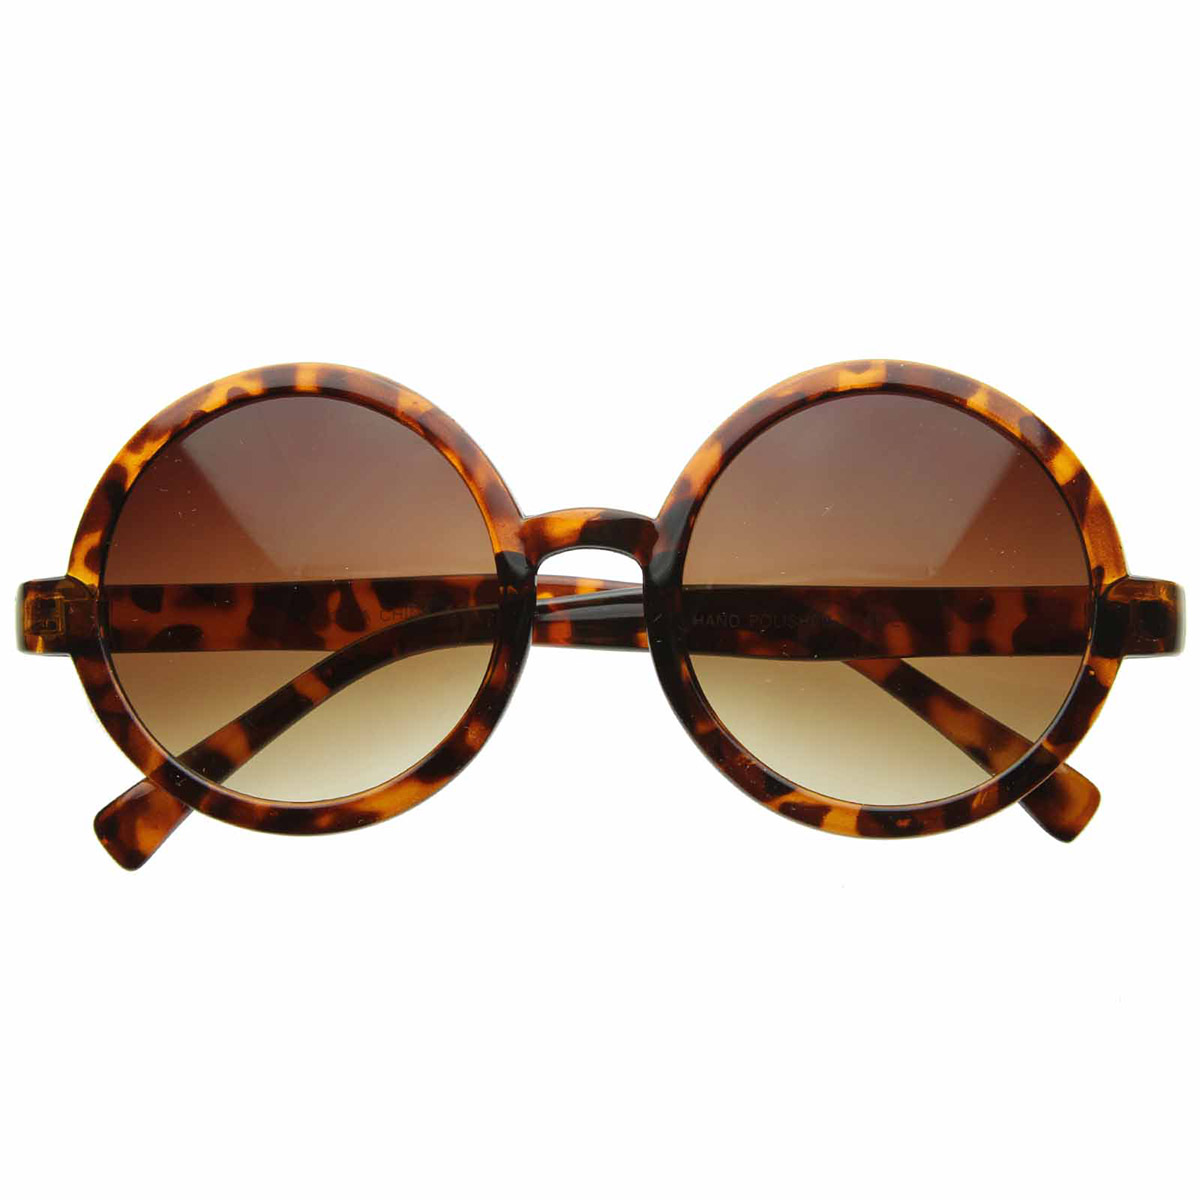 sunglassLA Cute Mod-era Vintage Inspired Round Circle ...